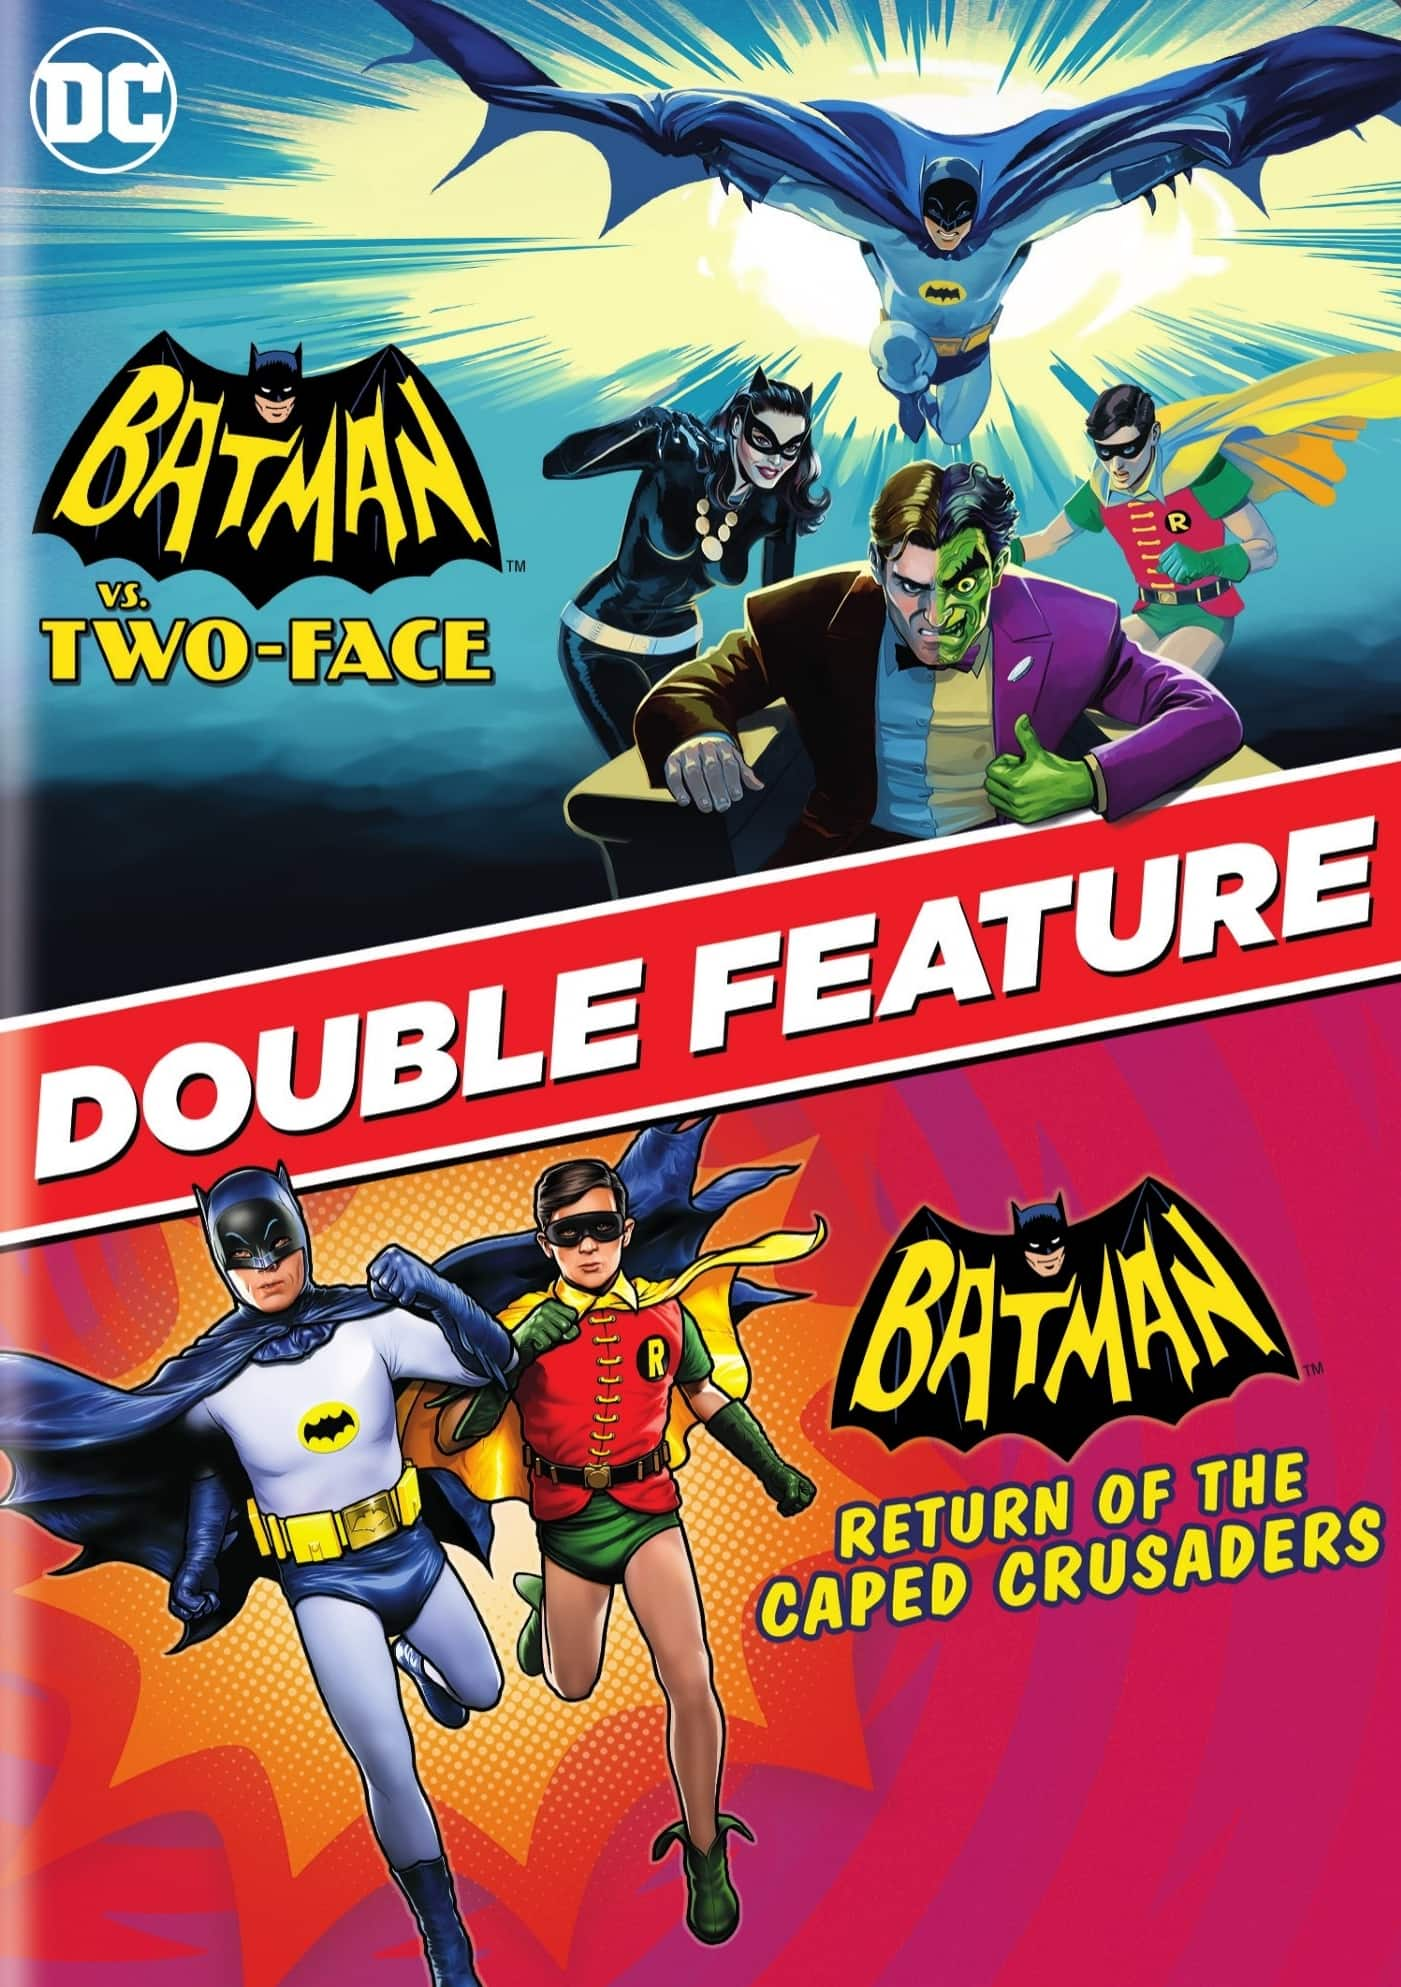 Batman: Return of the Caped Crusaders + Batman vs. Two-Face 2-Movie Collection (Digital HD) $9.99 @ iTunes [Movies Anywhere]